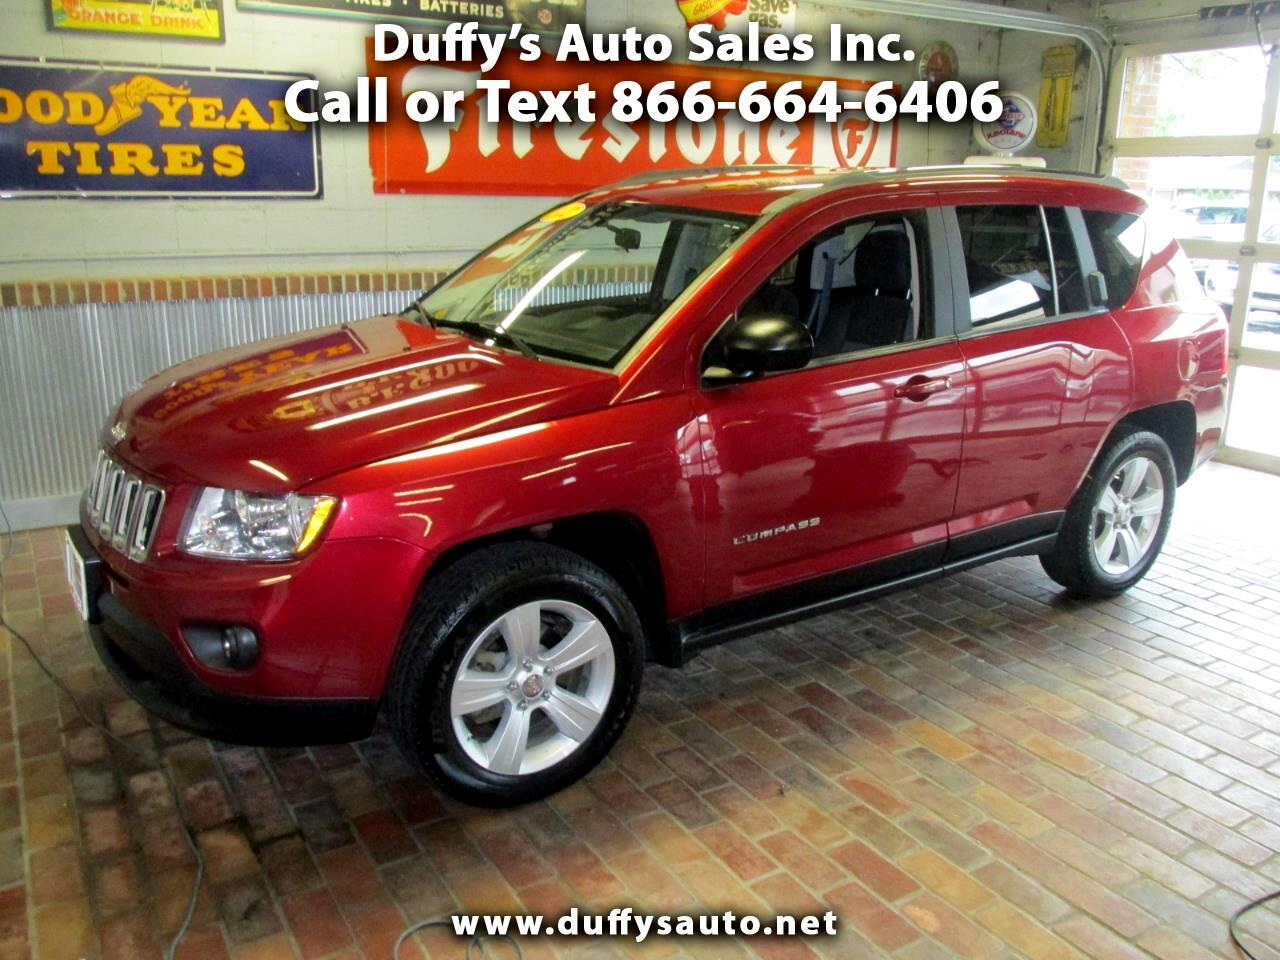 2012 Jeep Compass FWD 4dr Latitude